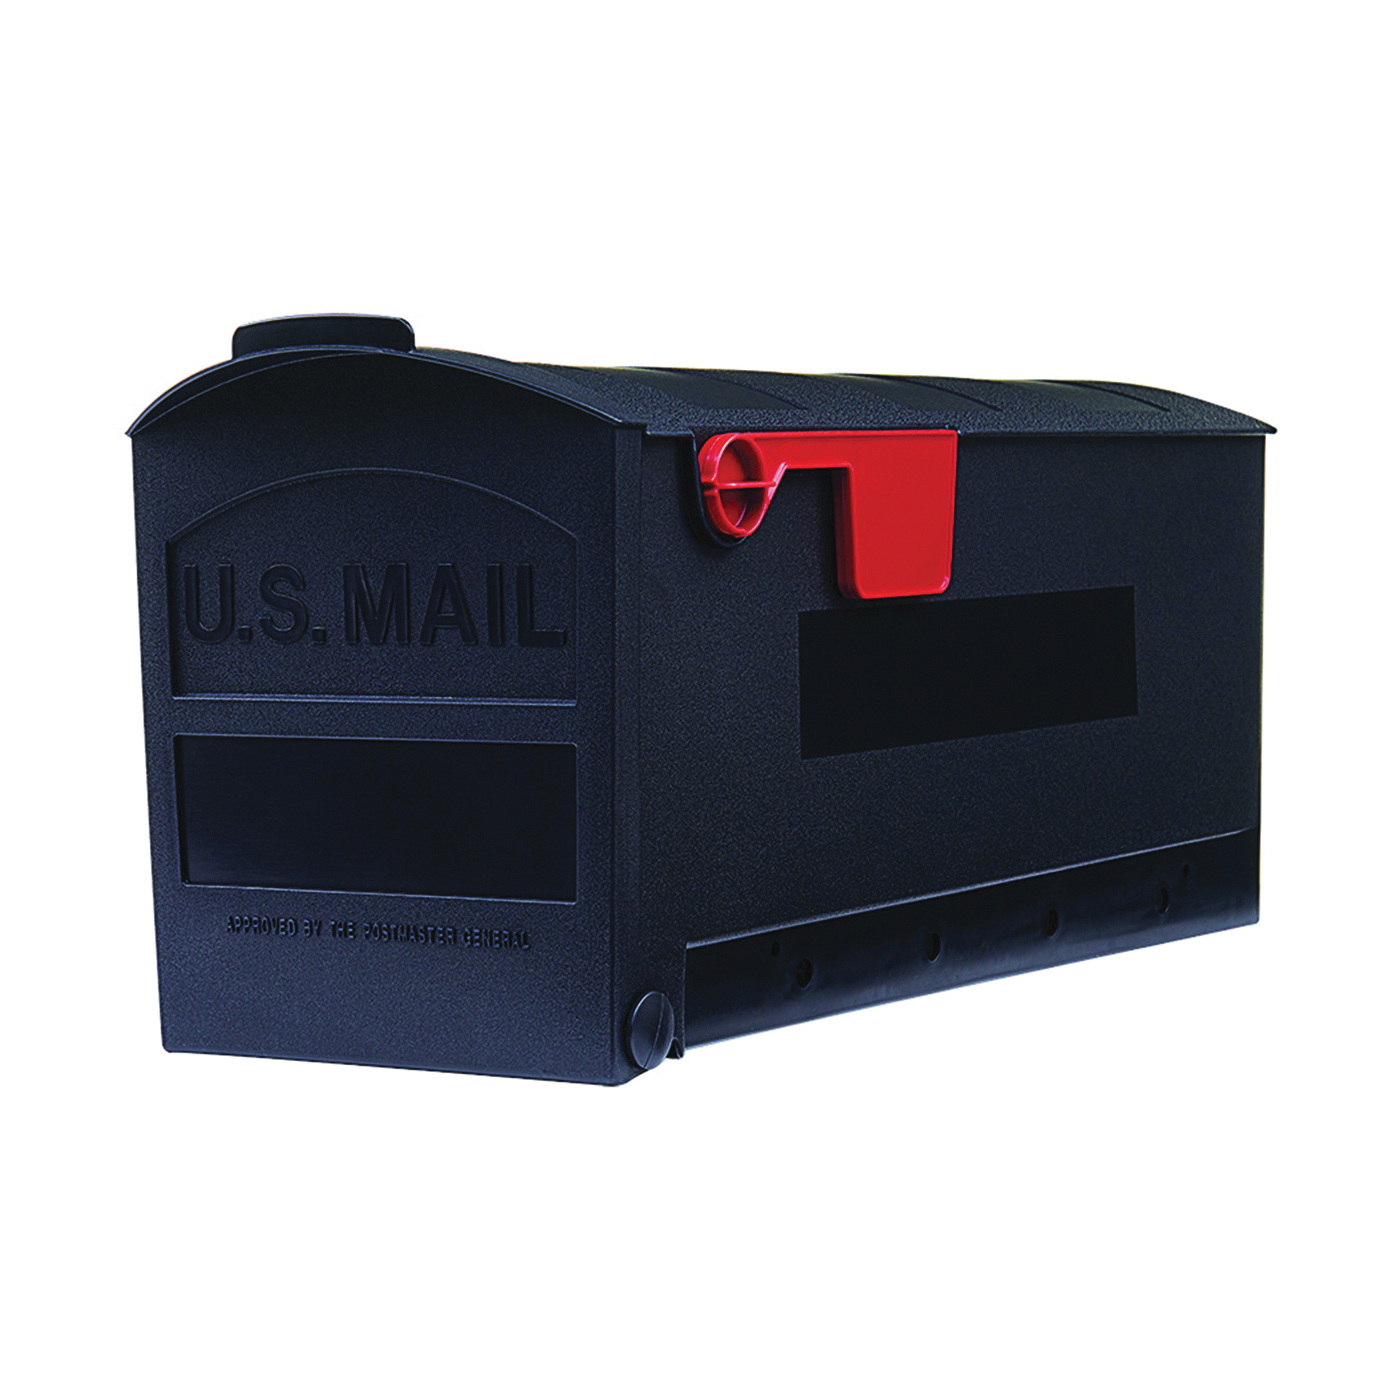 Picture of Gibraltar Mailboxes Patriot GMB505B01 Rural Mailbox, 1000 cu-in Capacity, Plastic, 8.4 in W, 20-1/2 in D, 9.8 in H